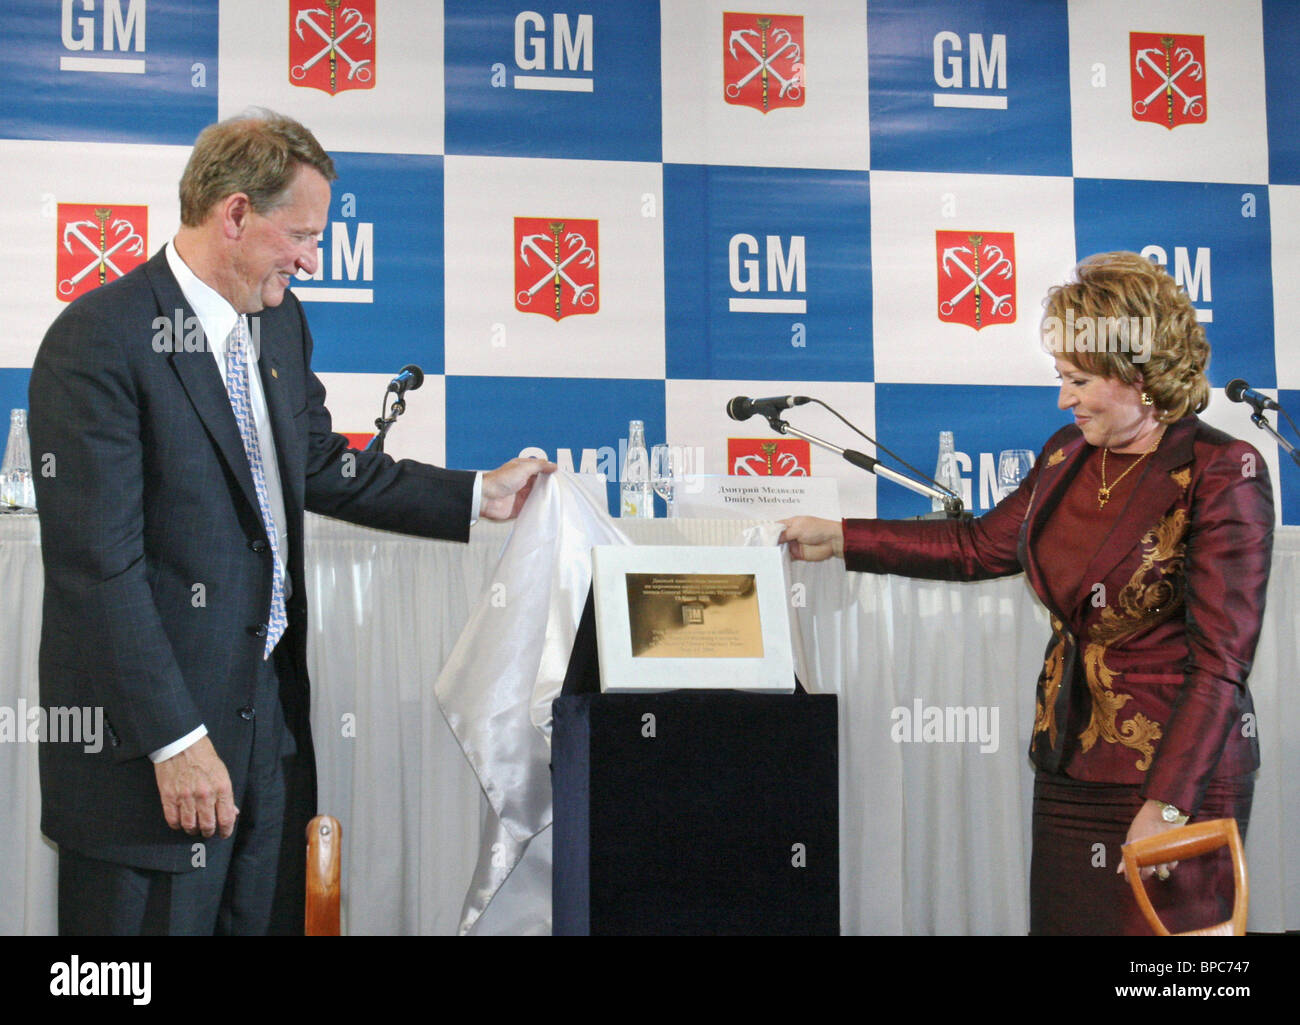 Foundation stone ceremony for General Motors plant takes place in St.Petersburg - Stock Image